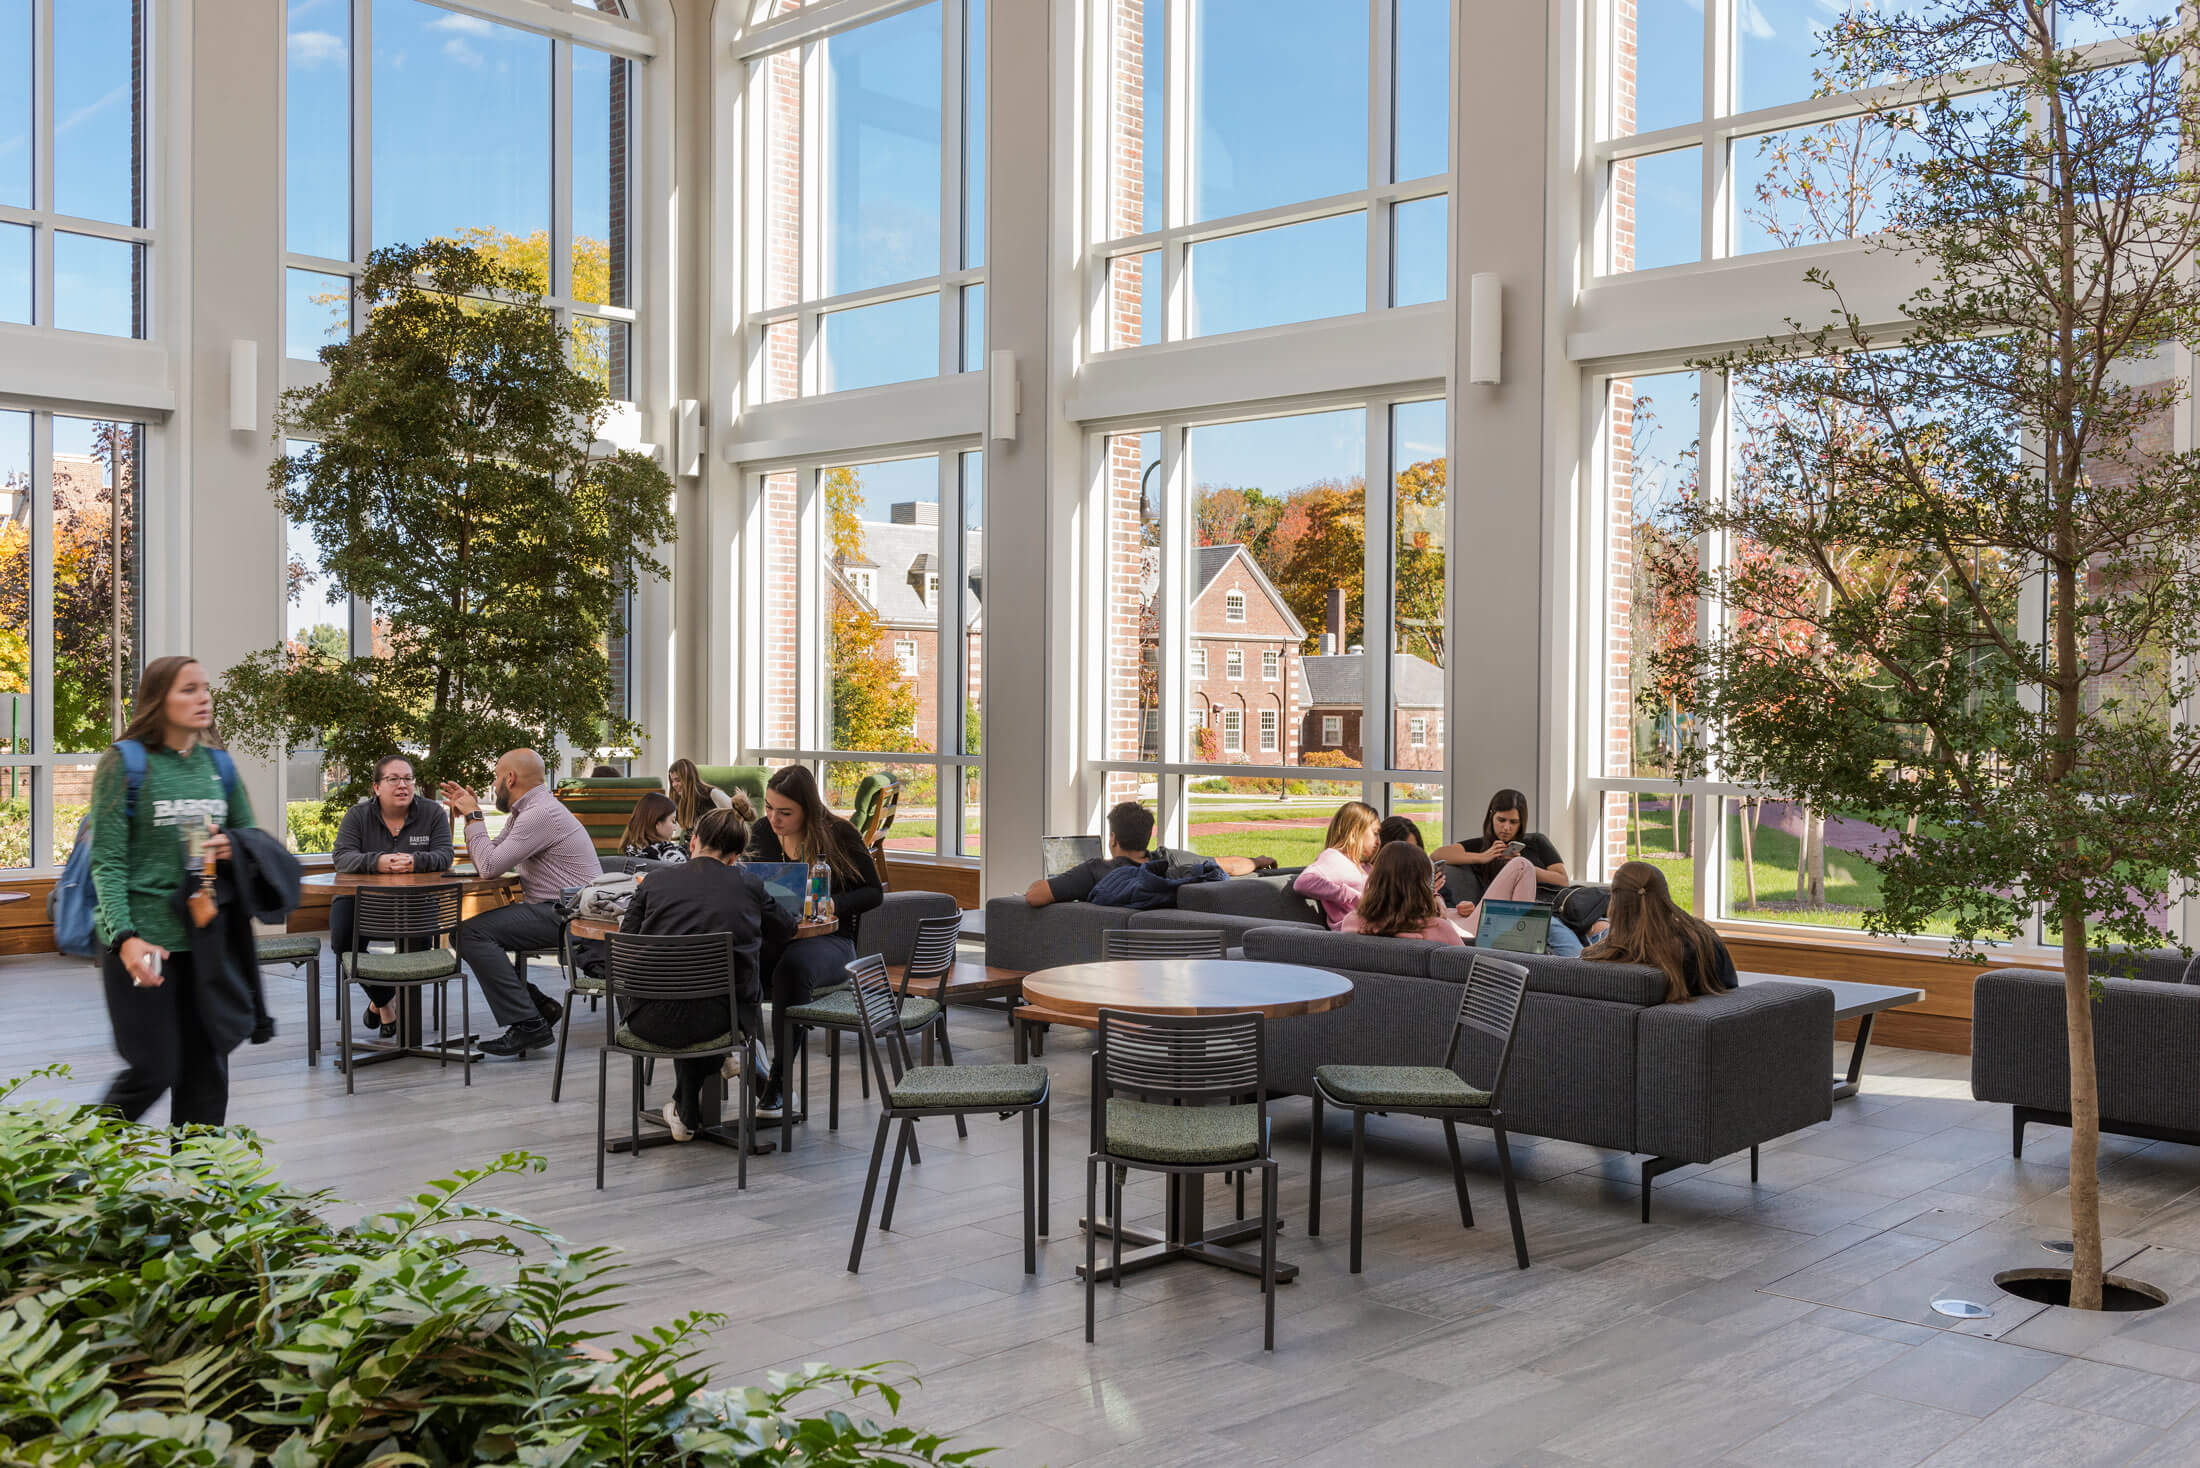 Girl walking by a group of students sitting in couches and at tables in front of tall windows looking out to the campus, with two indoor trees framing the seating area.